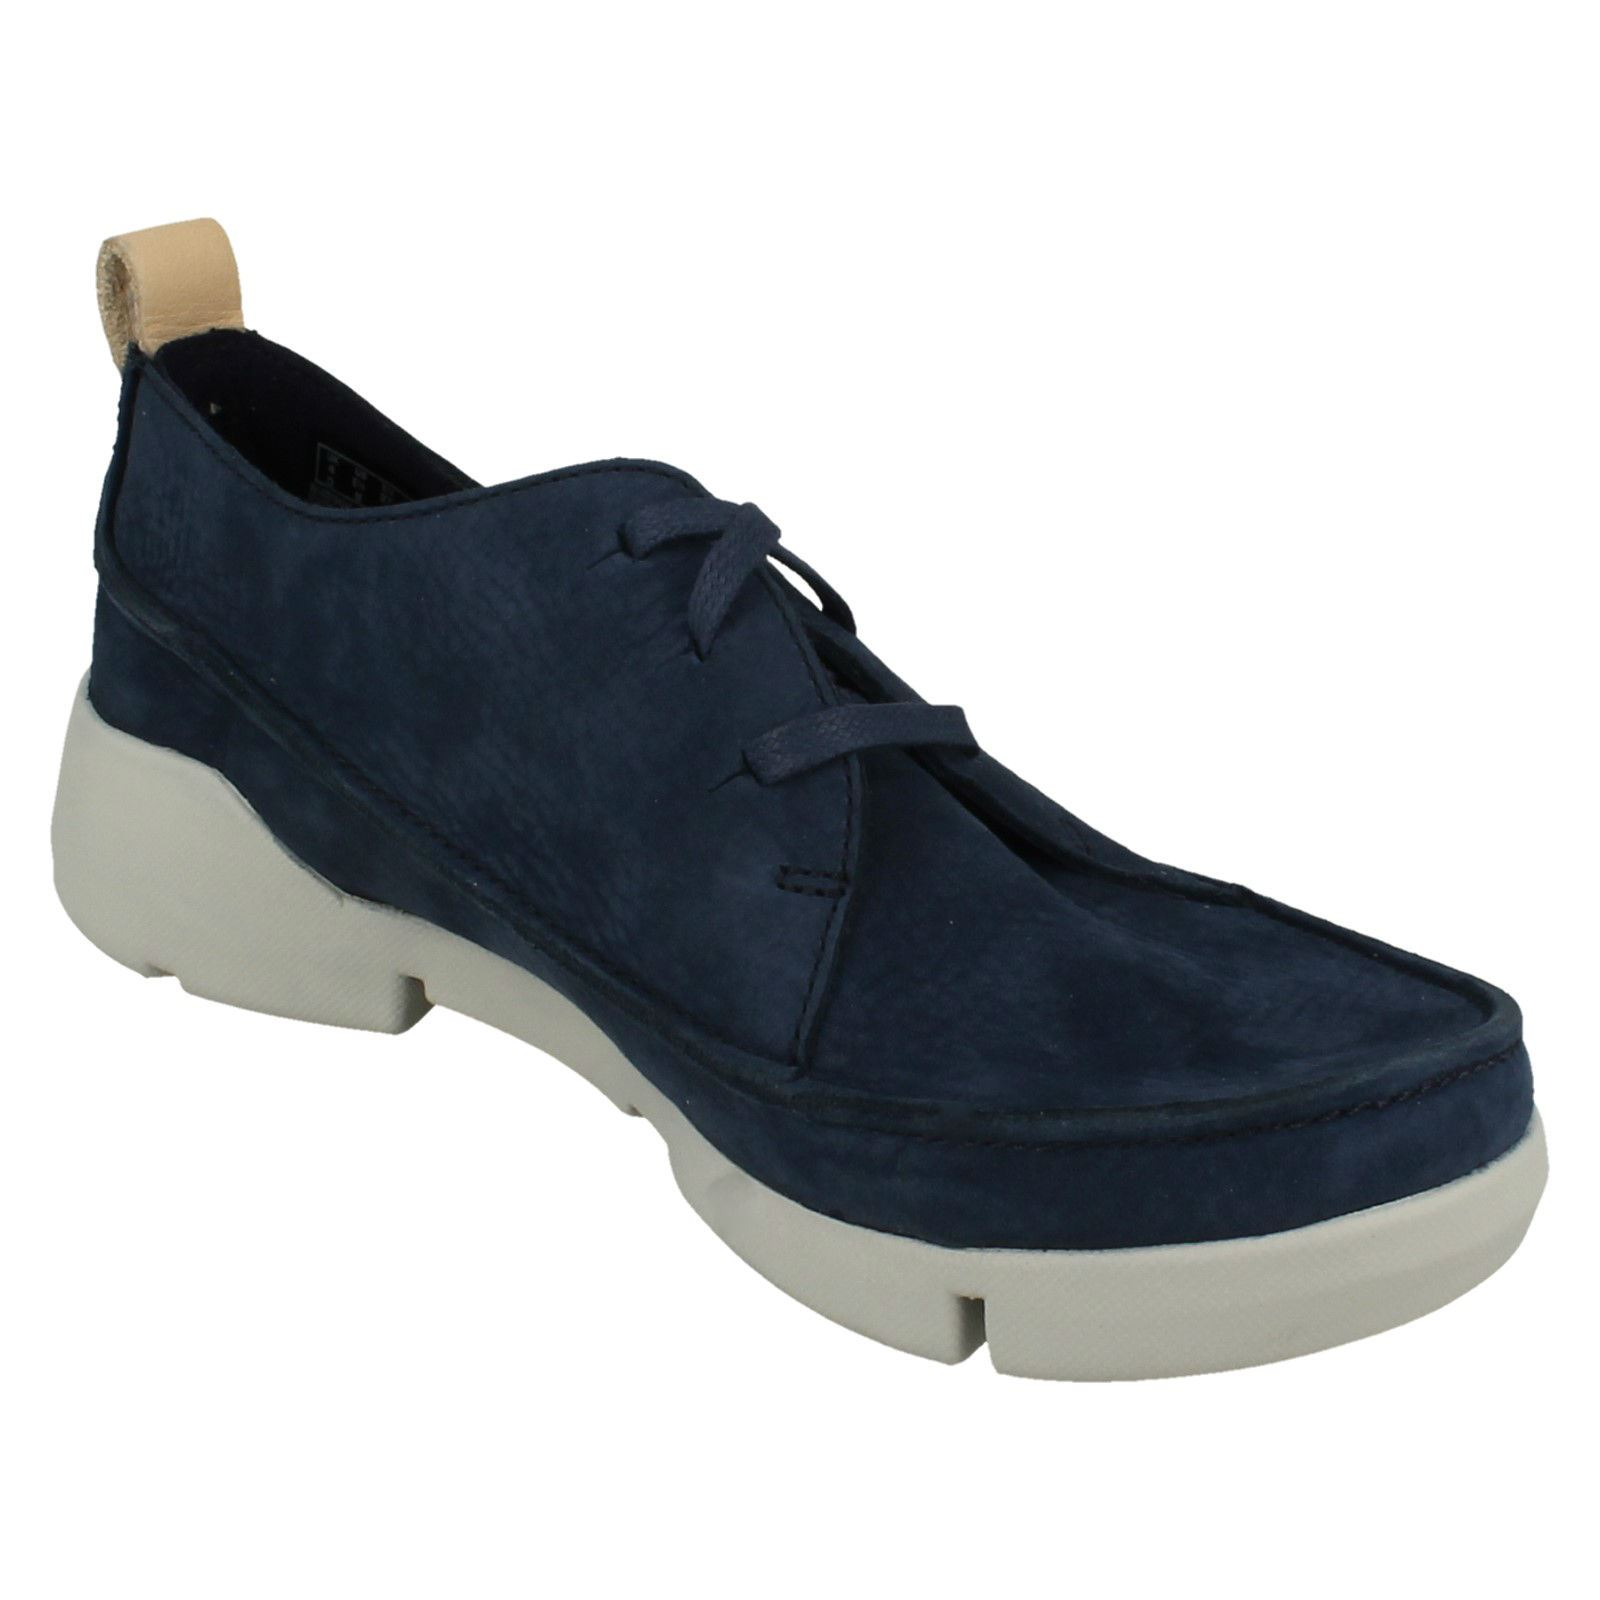 Clarks Ladies Lace Up Casual Casual Casual Trainers - Tri Clara f198d3